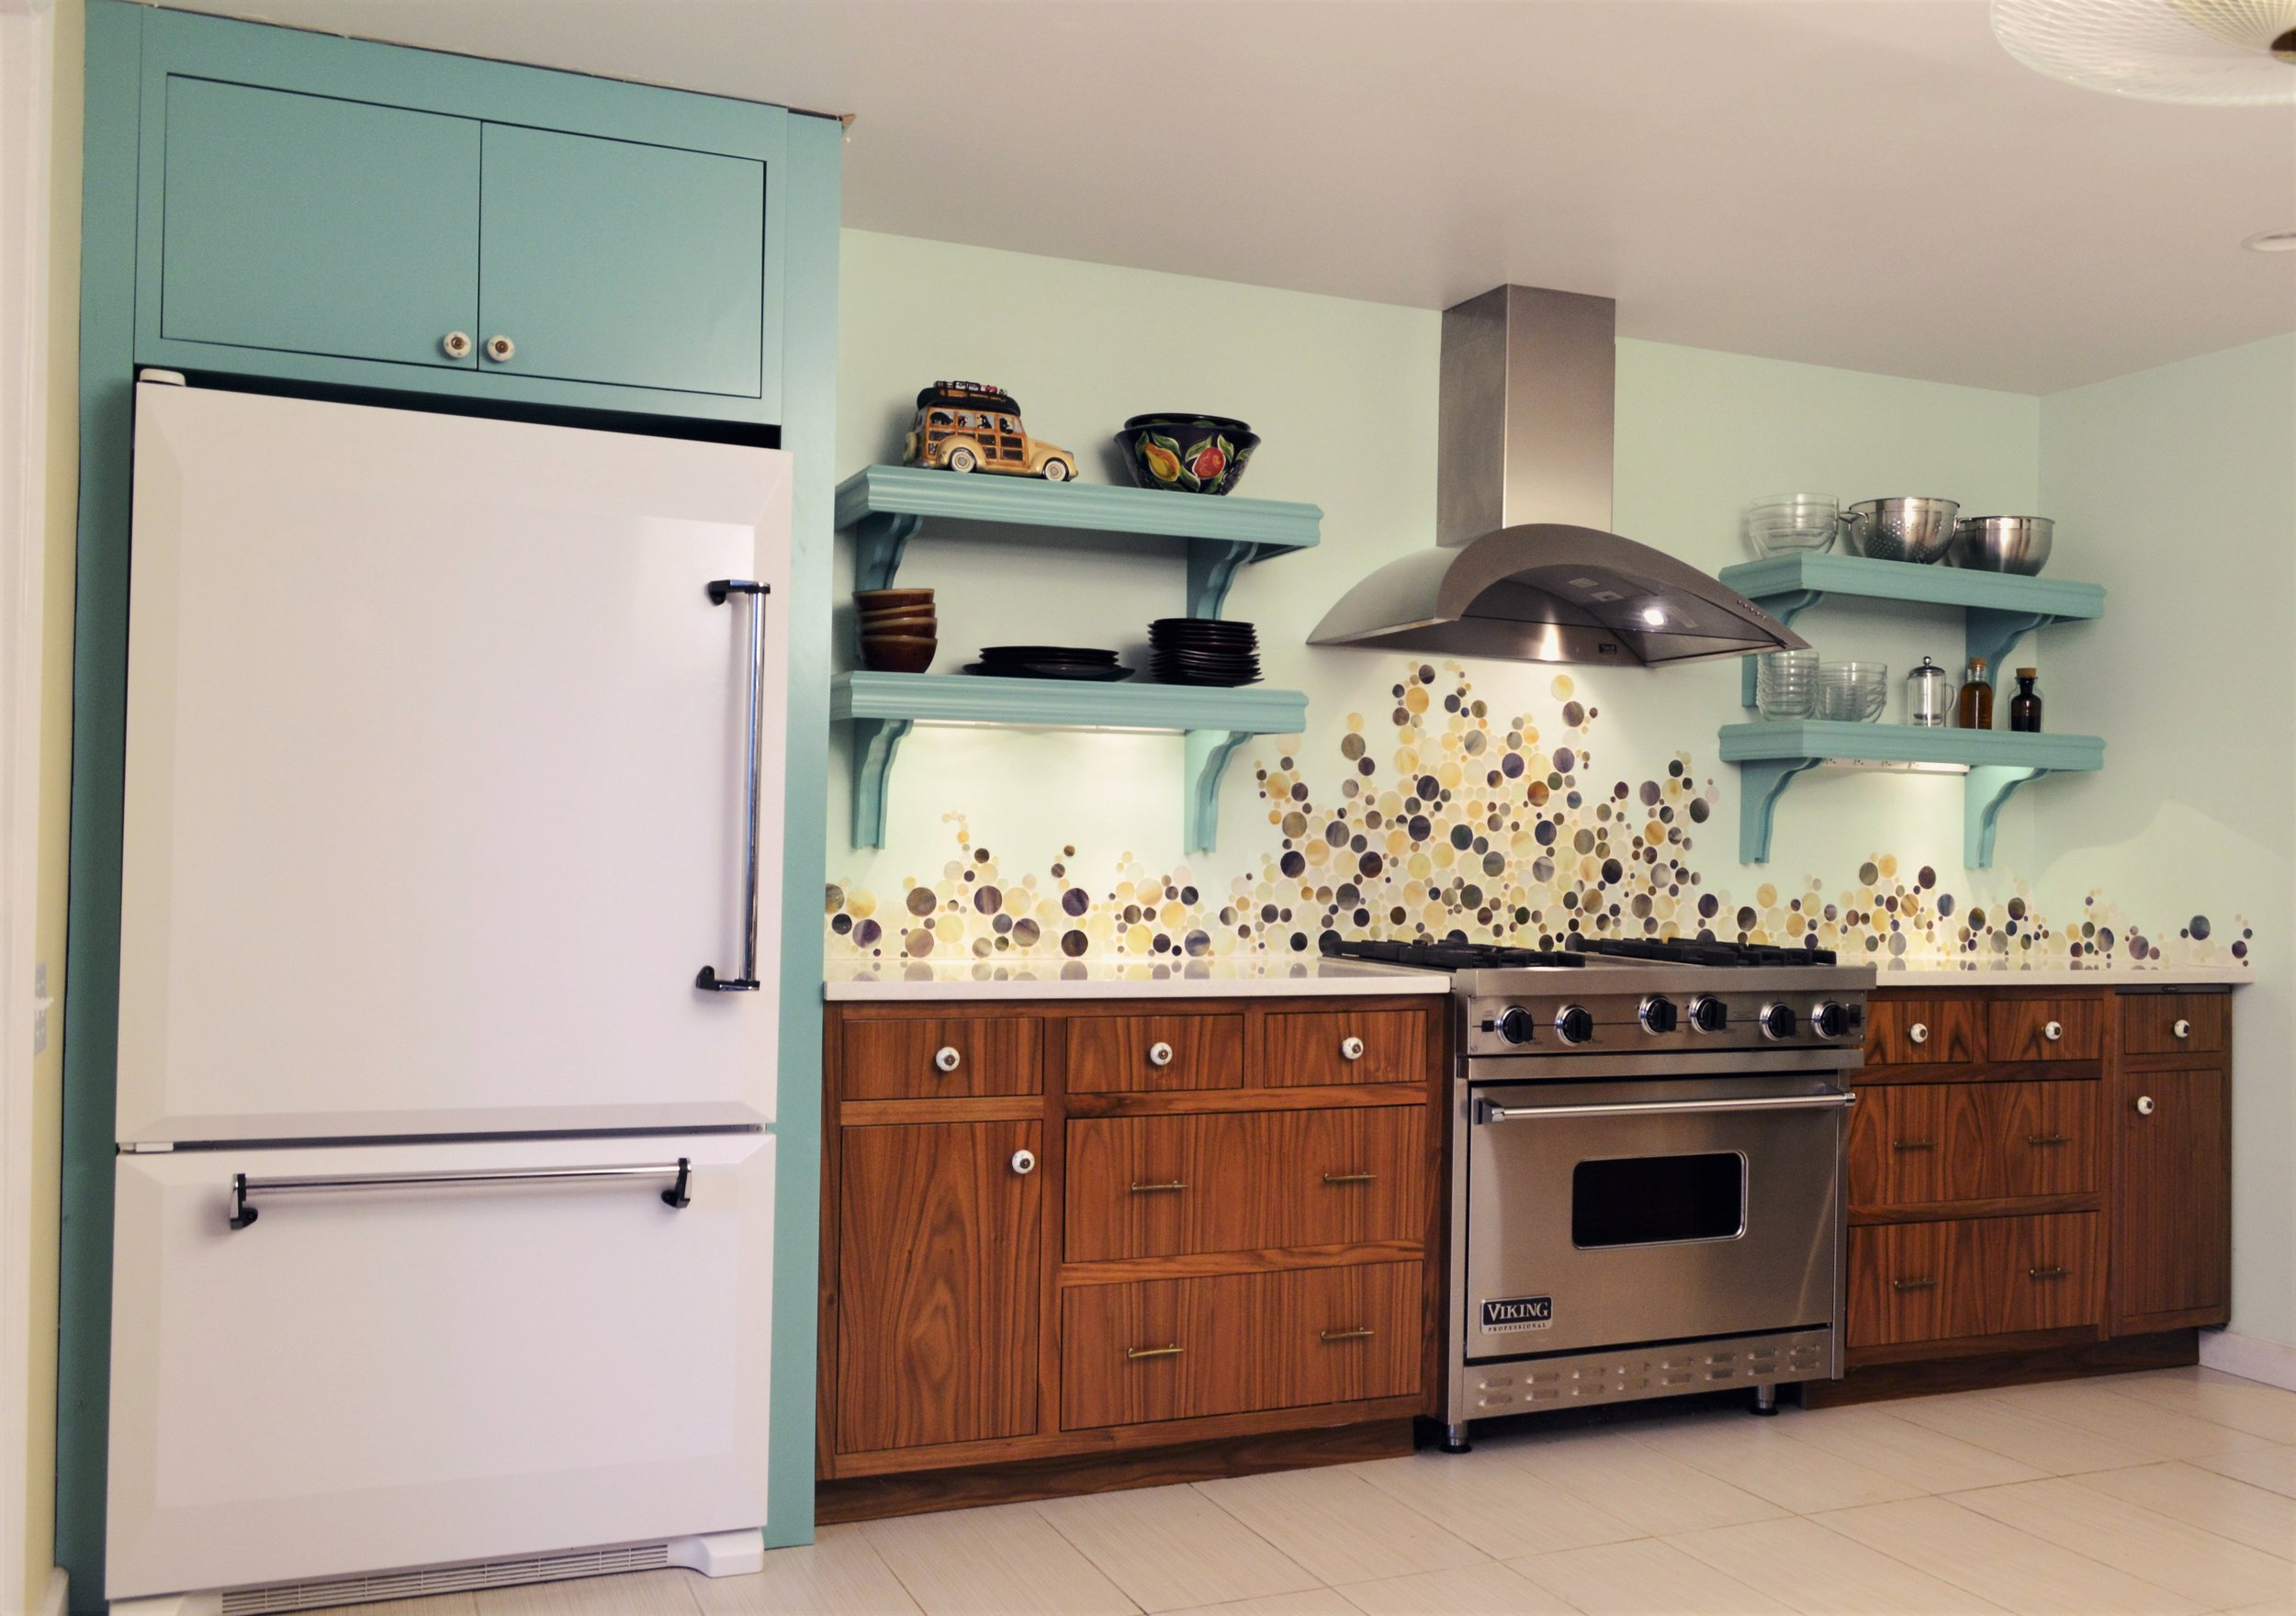 Bellevue kitchen appliance remodel